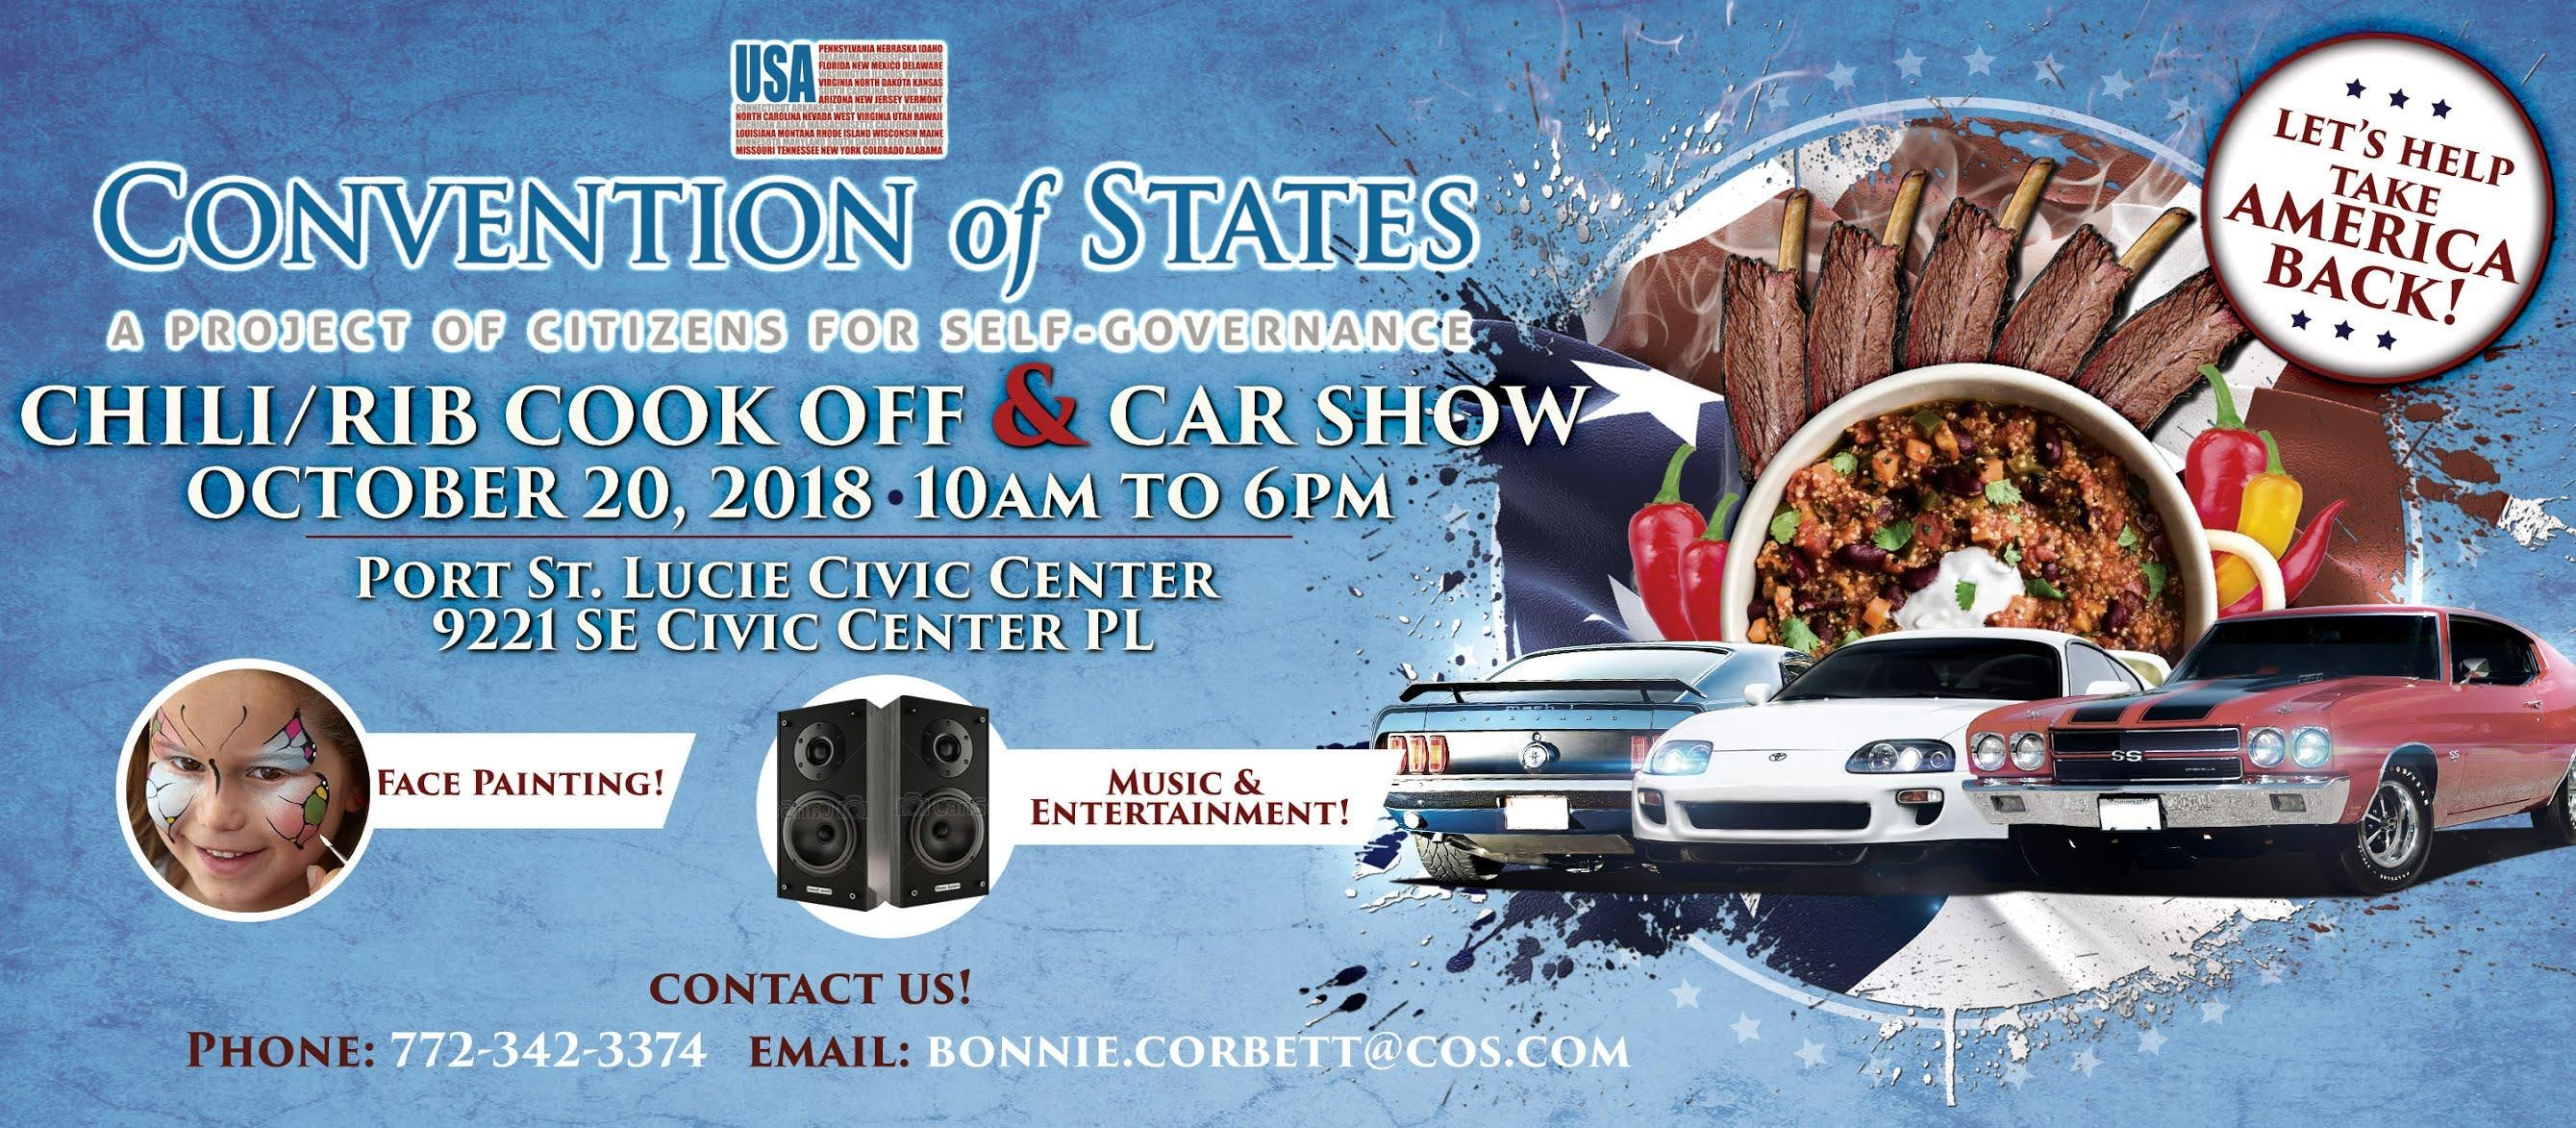 Convention Of States ChiliRib Cook Off Car Show OCT - Civic center car show